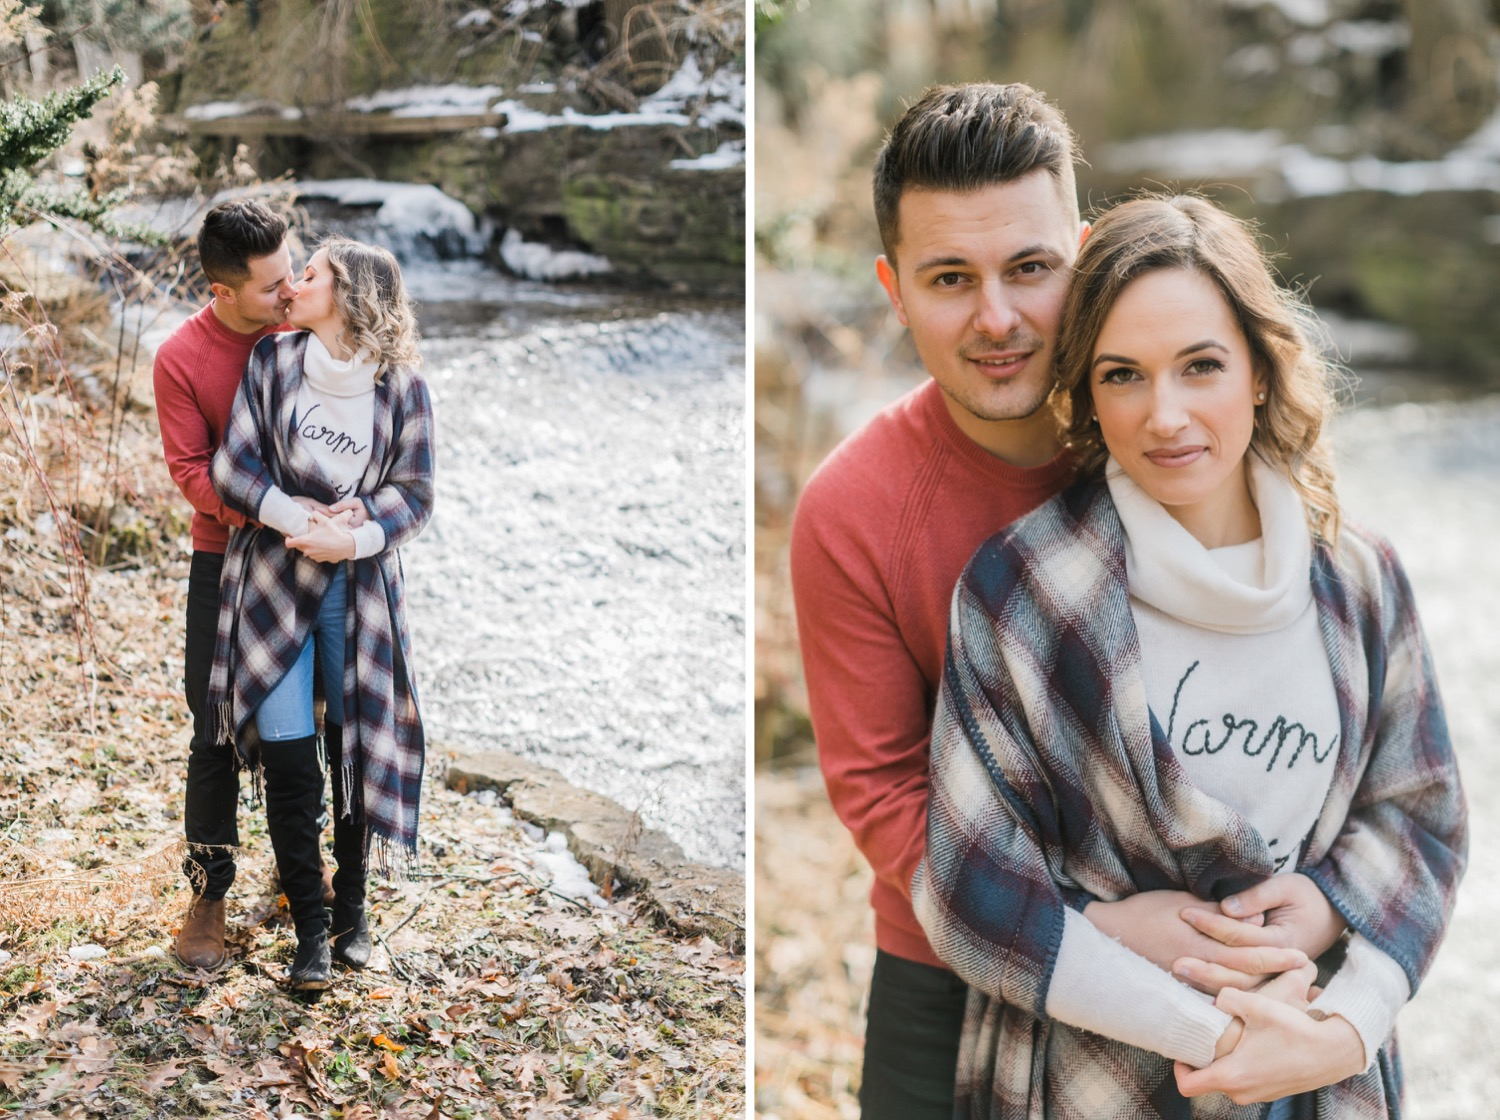 7_Libby___Michael___Engagement_Session___High_Res._Finals_0061_Libby___Michael___Engagement_Session___High_Res._Finals_0063.jpg